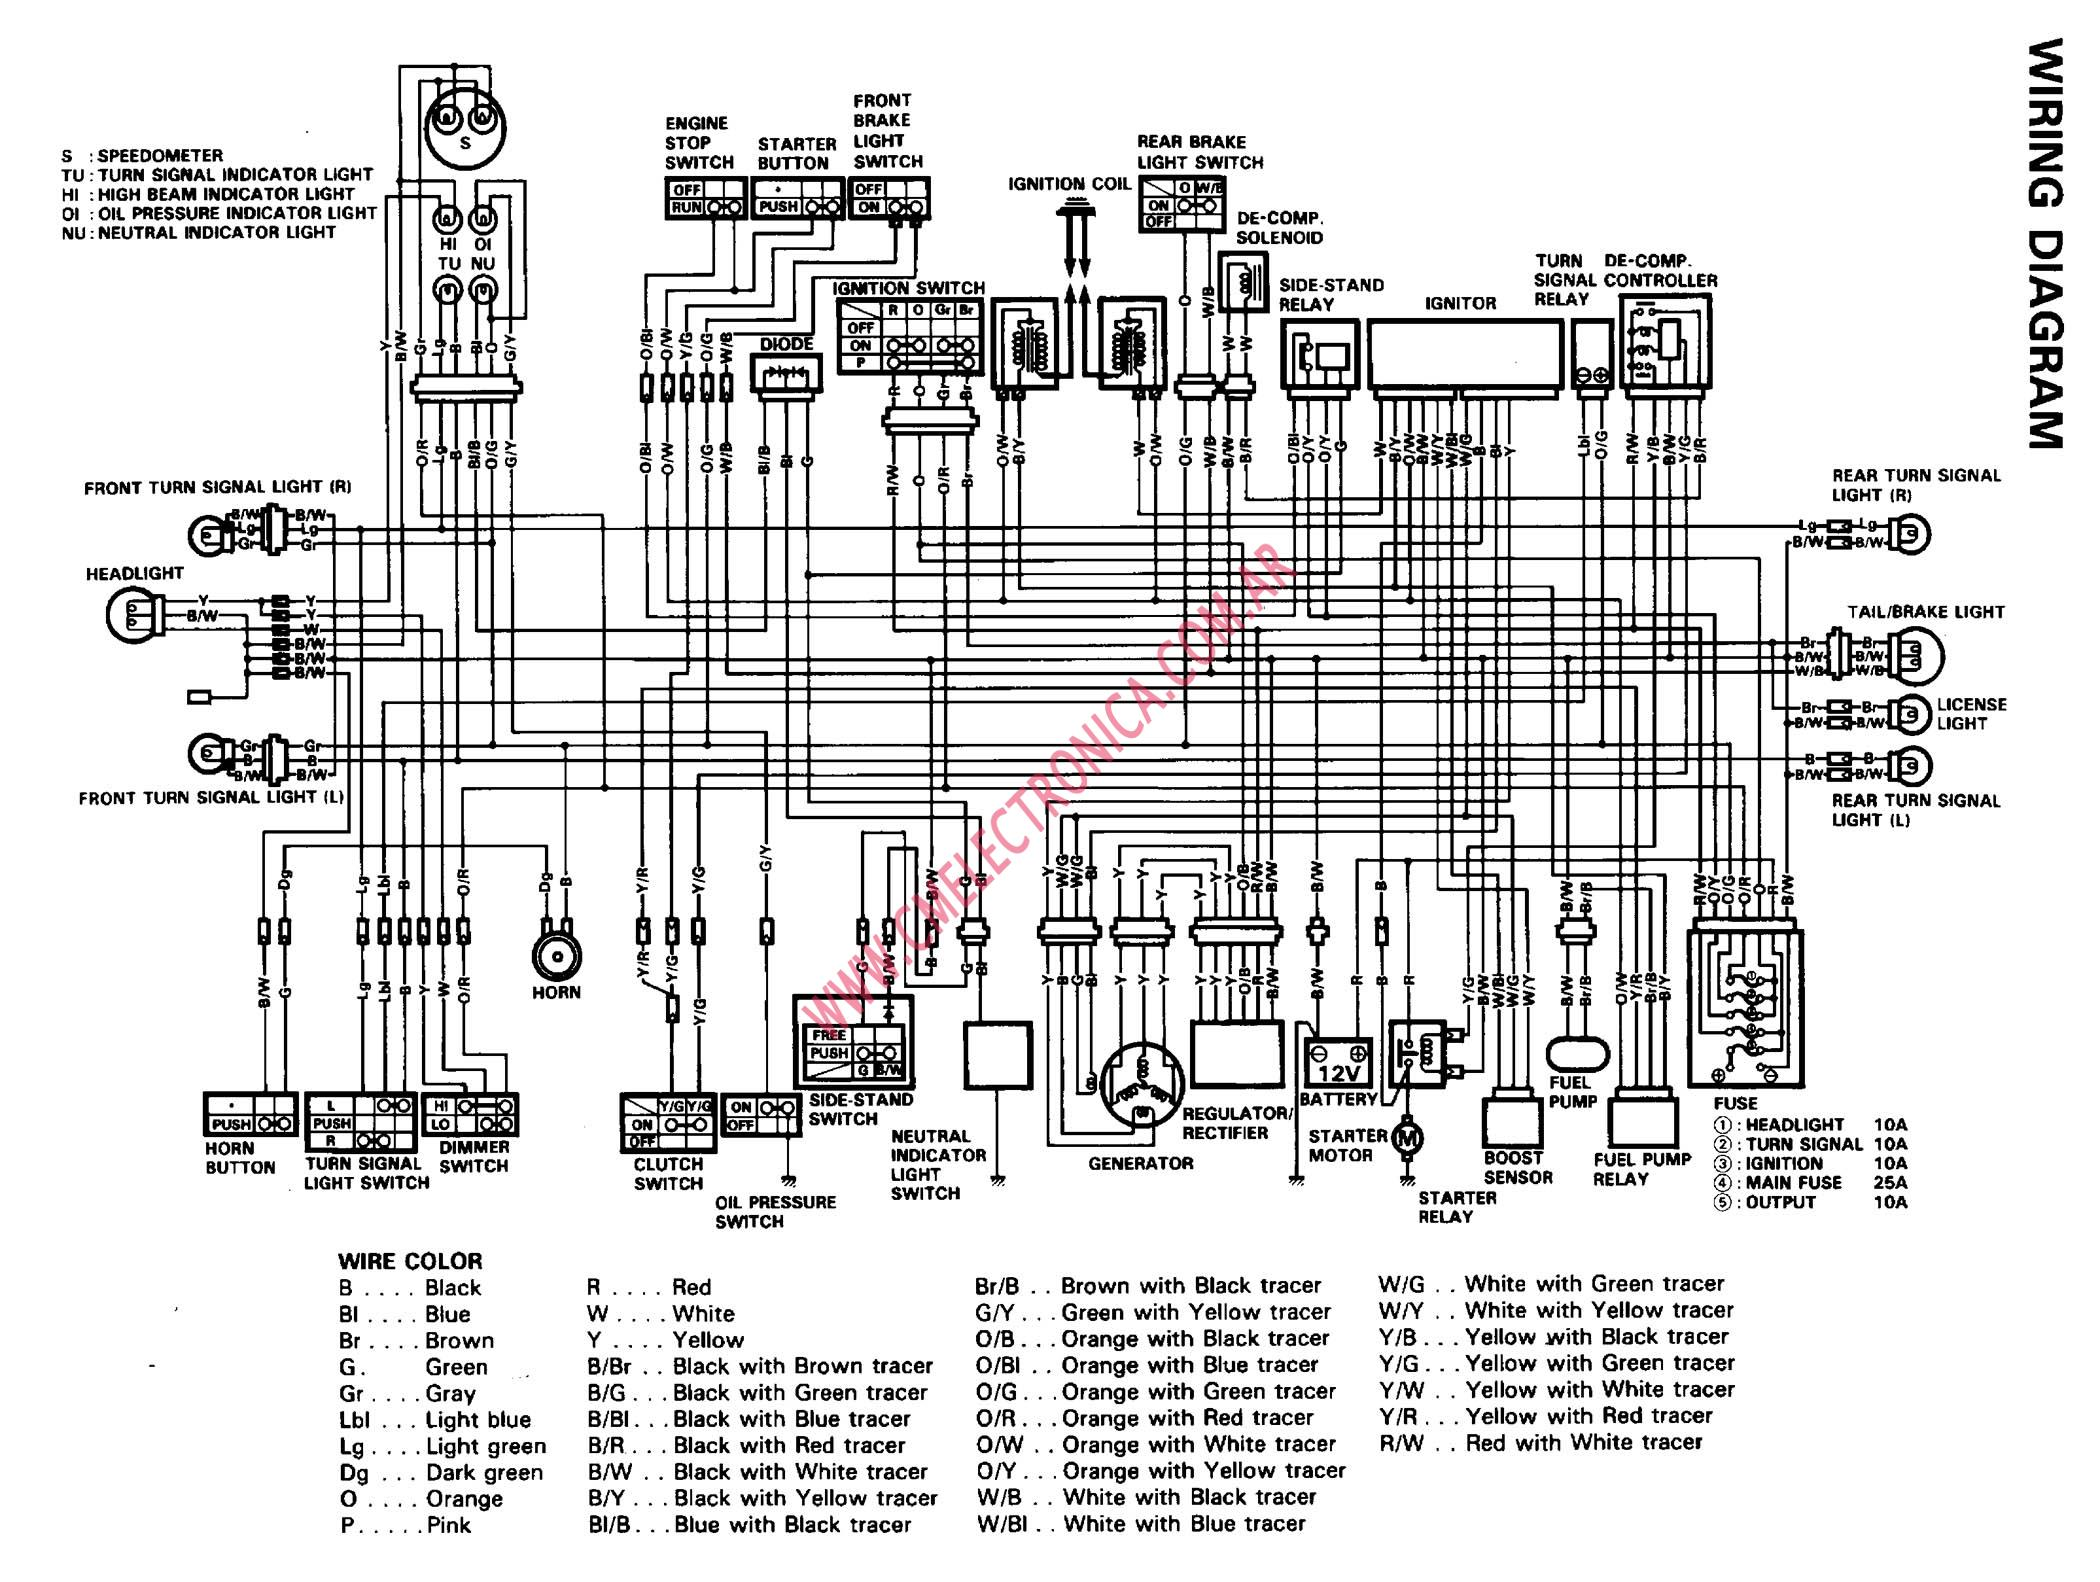 2004 Suzuki 800 Intruder Wiring Diagram Schematics Diagrams Eiger Schematic 1400 35 400 700